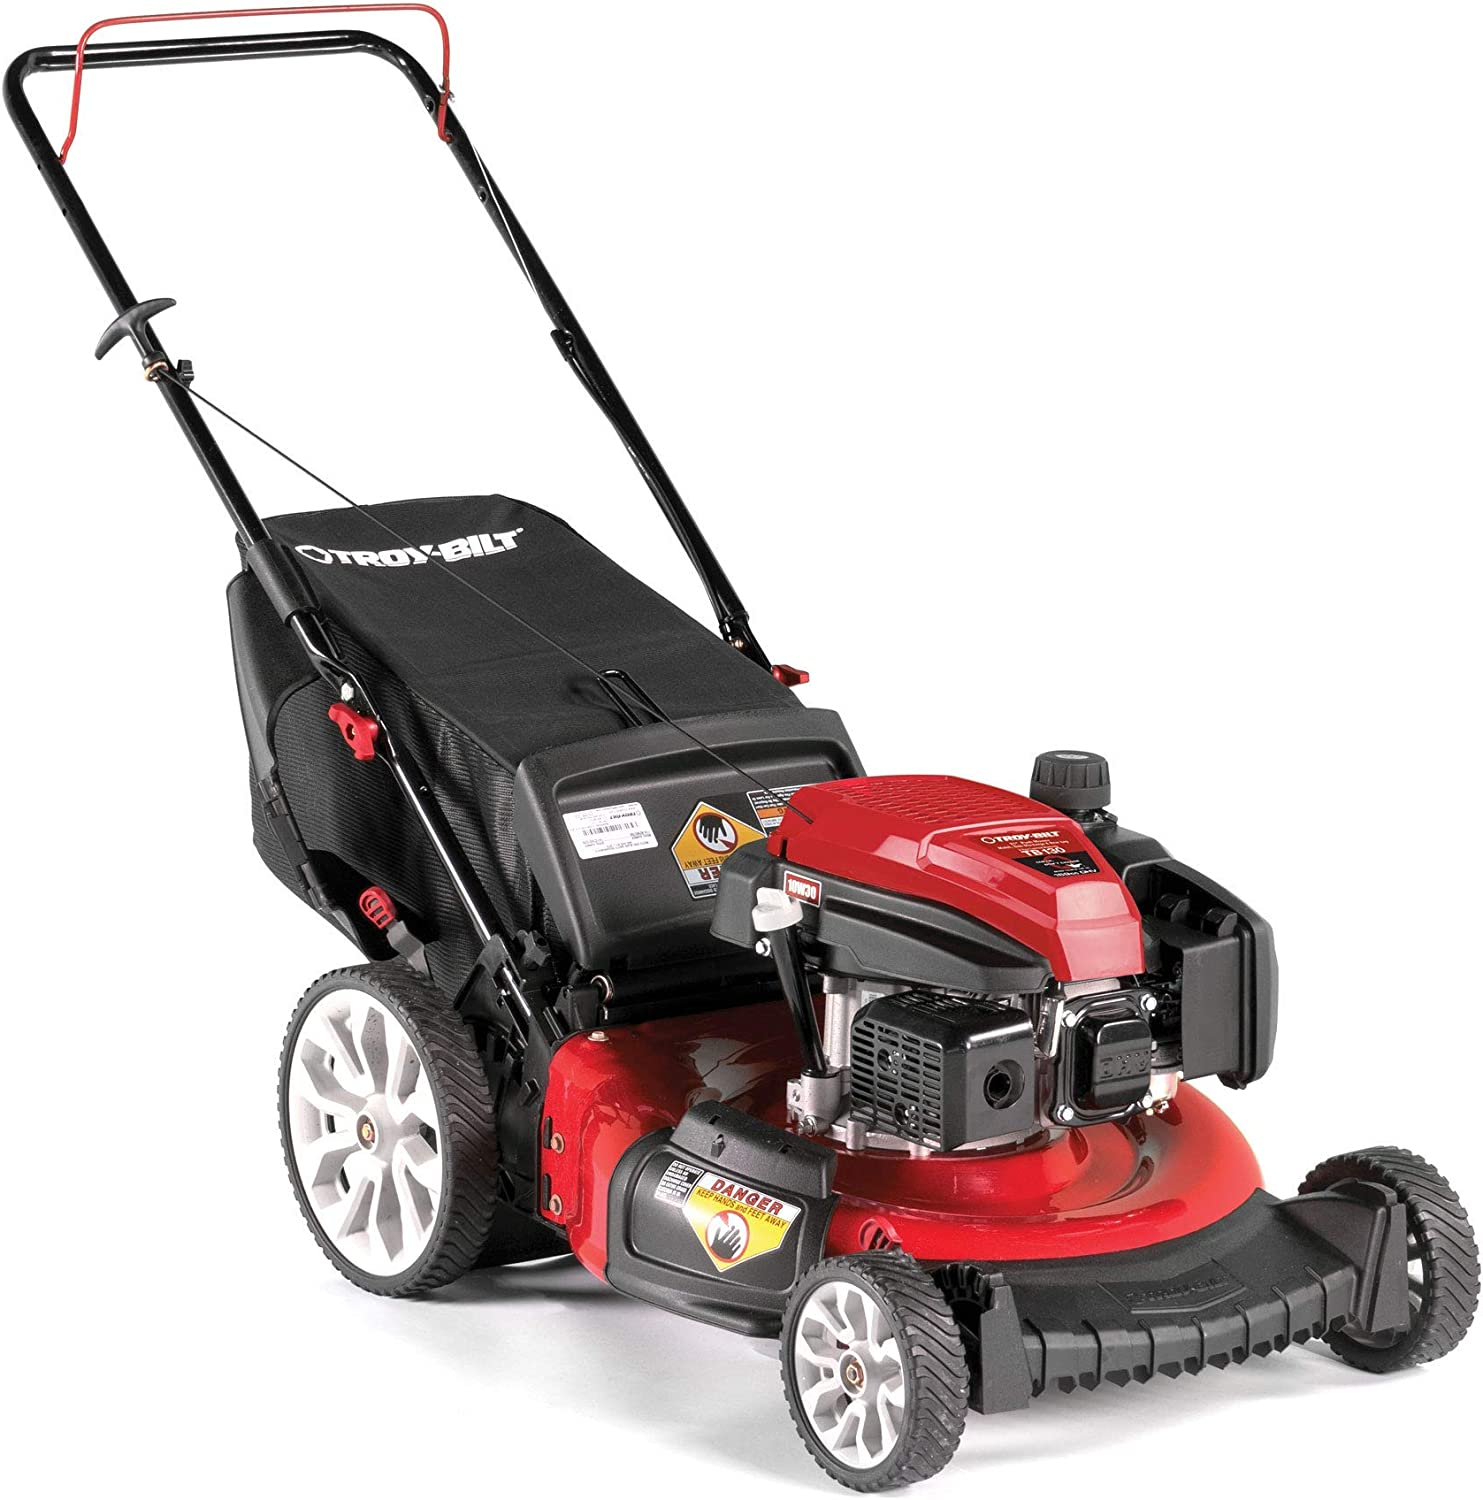 Troy Bilt TB130 159cc Push Walk Behind Lawn Mower